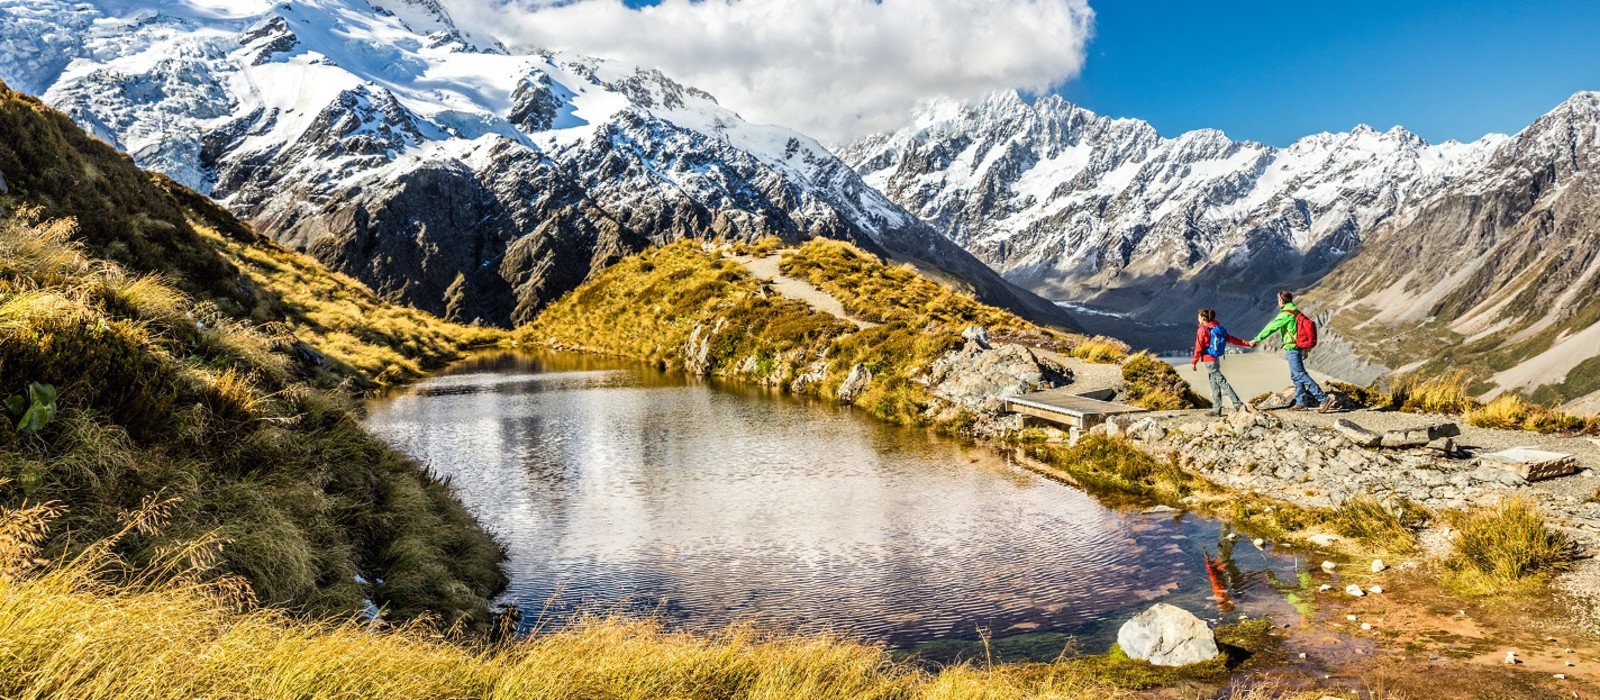 Hiking travel nature hikers in New Zealand. Couple people walking on Sealy Tarns hike trail route with Mount Cook landscape, famous tourist attraction - New Zealand travel